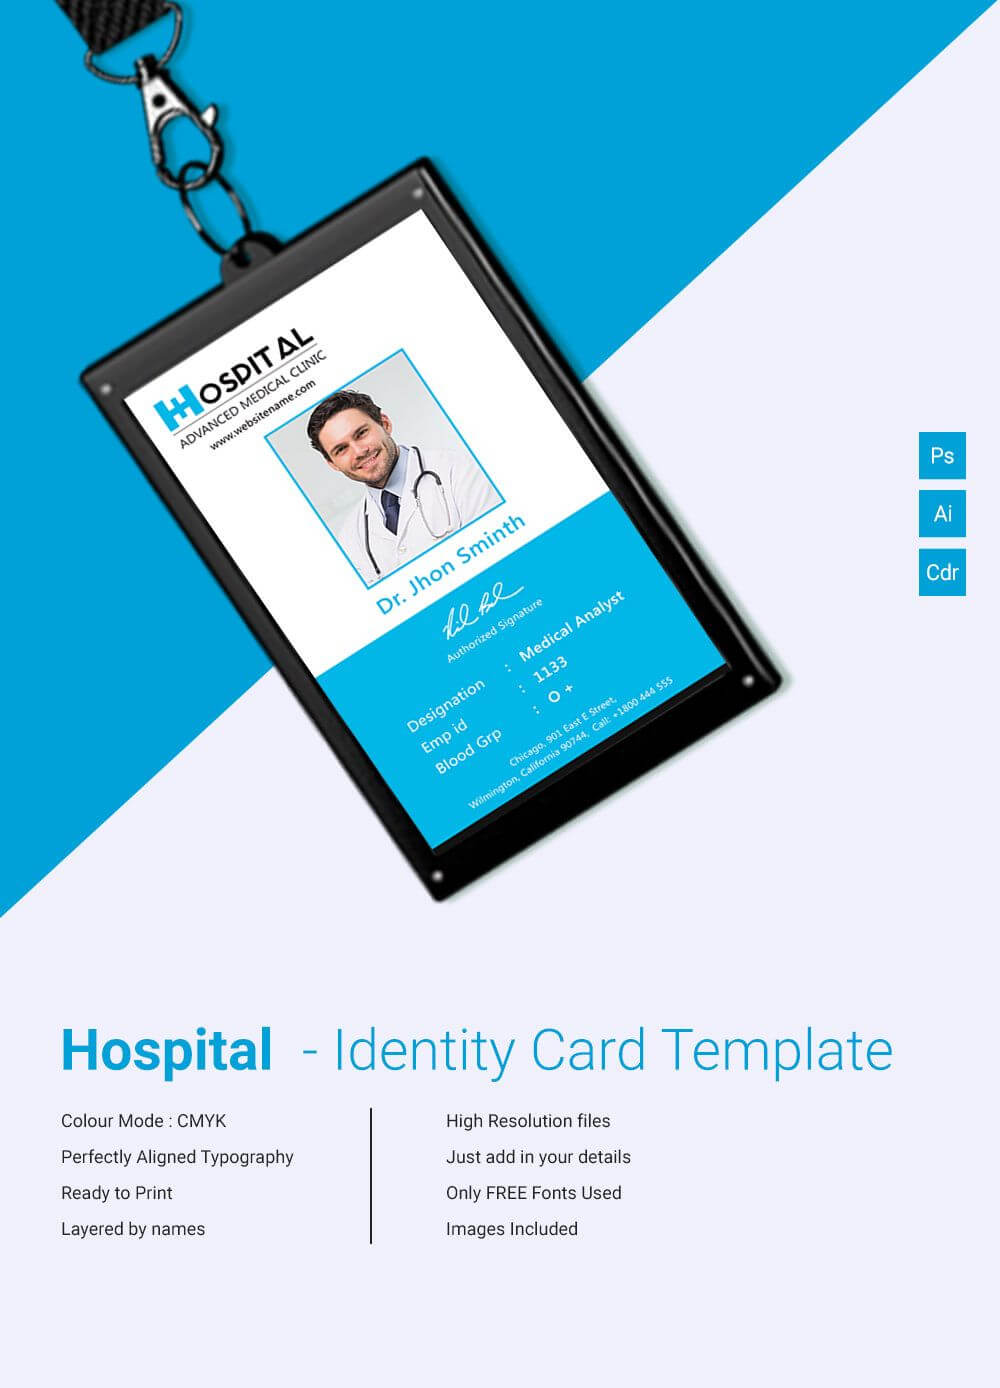 001 Identification Card Templates Free Download Template within Id Card Template Word Free